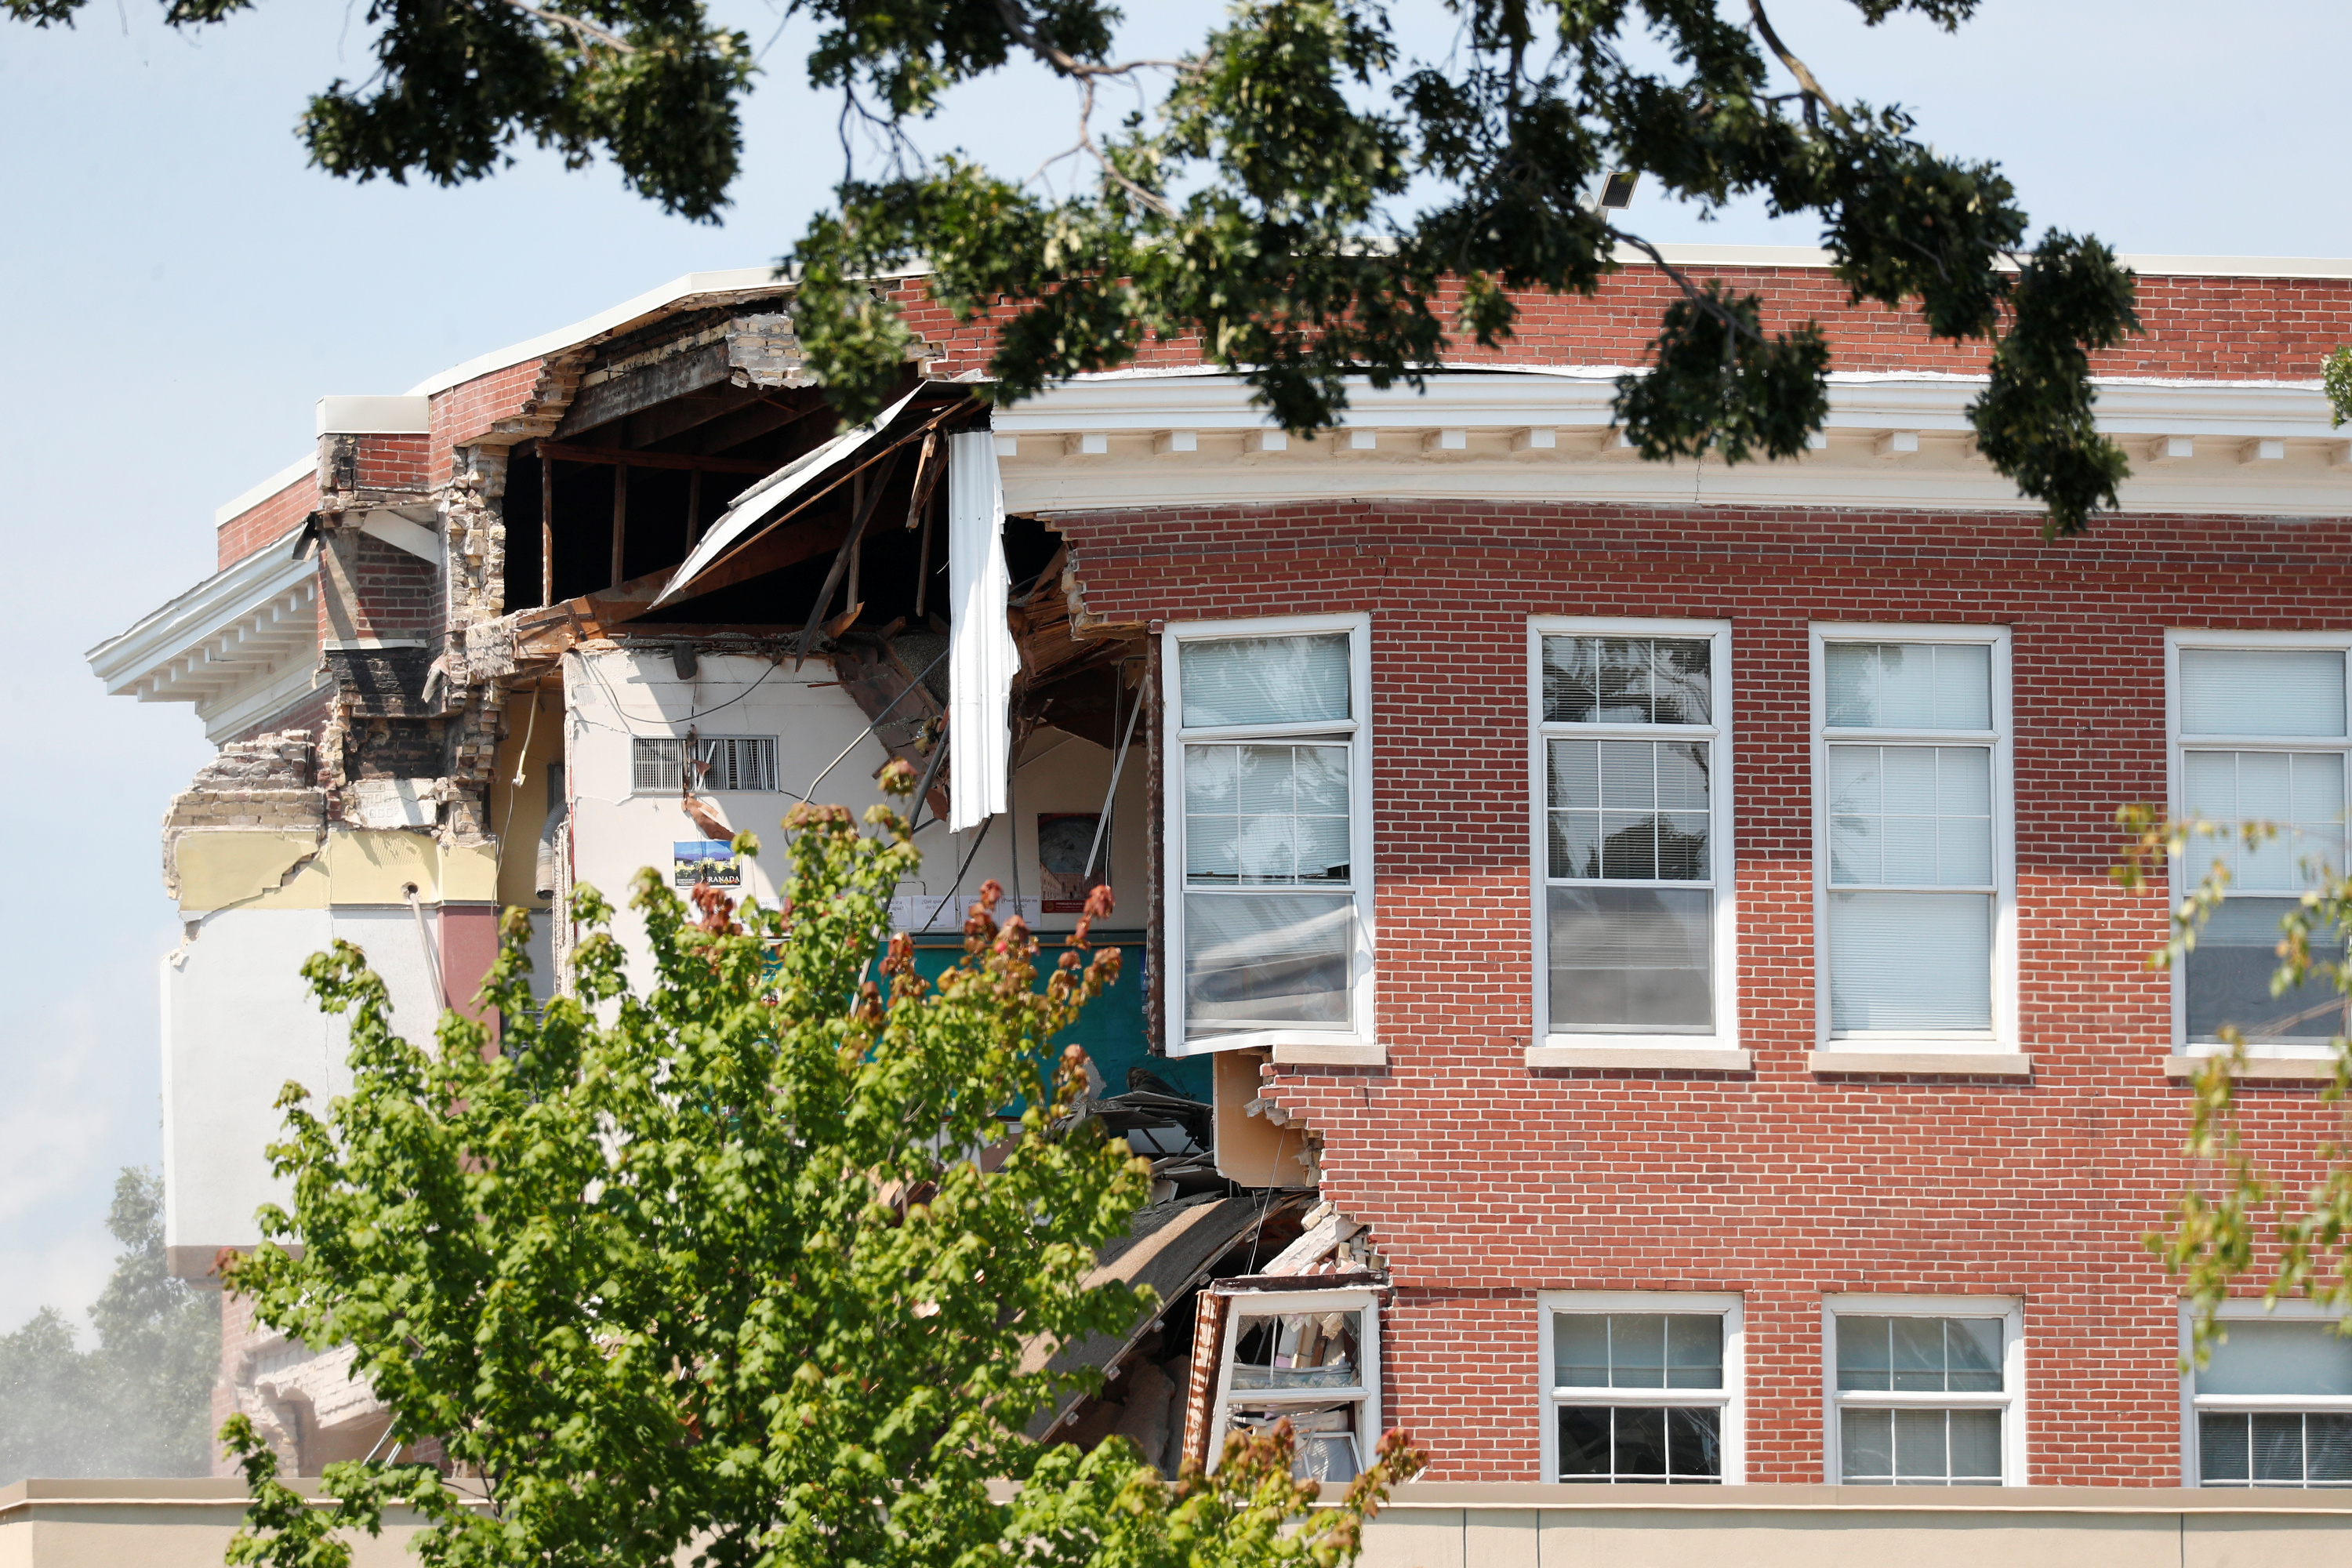 Damage to the building is seen as emergency personnel work the scene of school building collapse at Minnehaha Academy in Minneapolis, Minnesota on Aug. 2, 2017. (REUTERS/Adam Bettcher)